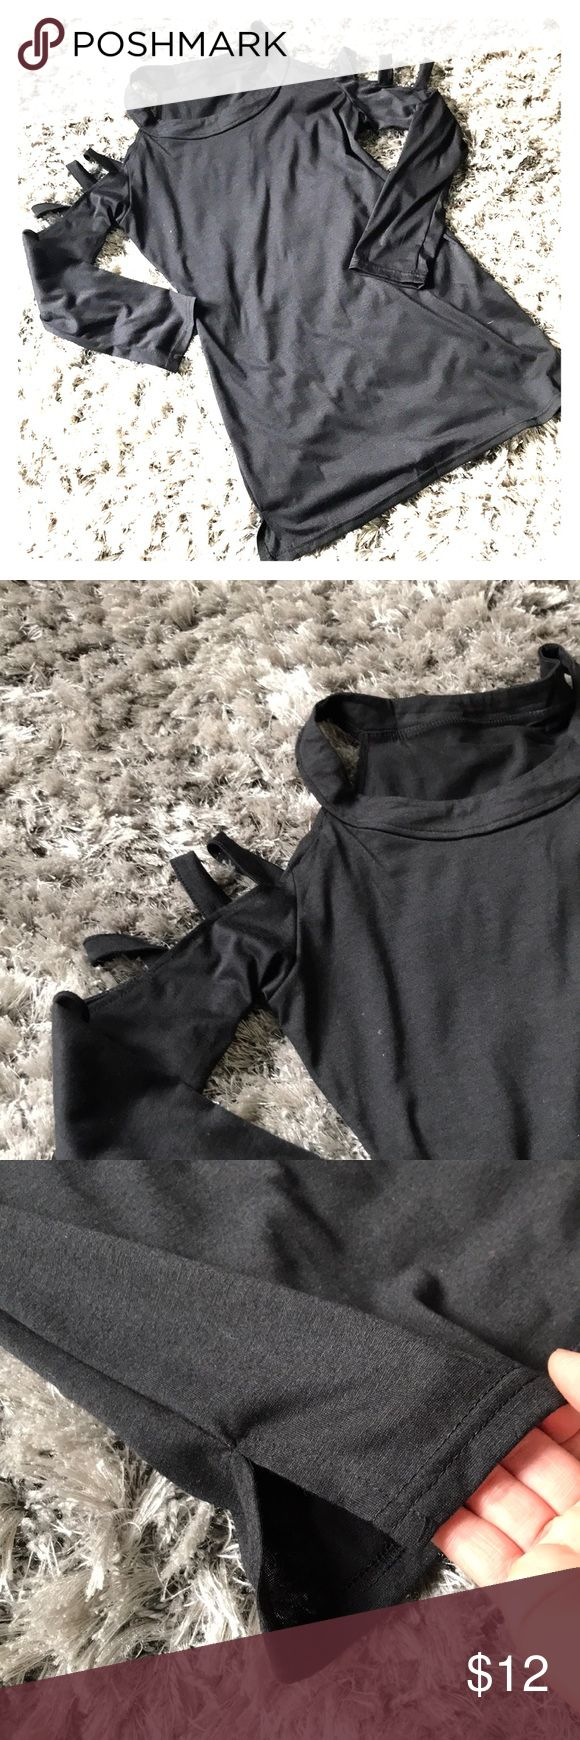 Black tunic NWOT Sext cut out sleeves. Thinner t-shirt like material. This is a size Large but  Runs small .  I'm a small  and this is just a bit big on me. However, if you want wear it looser & you're well endowed, then this would fit you well. I would not recommend this tunic if you wear a size large  . Gifted to me , & never worn . Tops Tunics